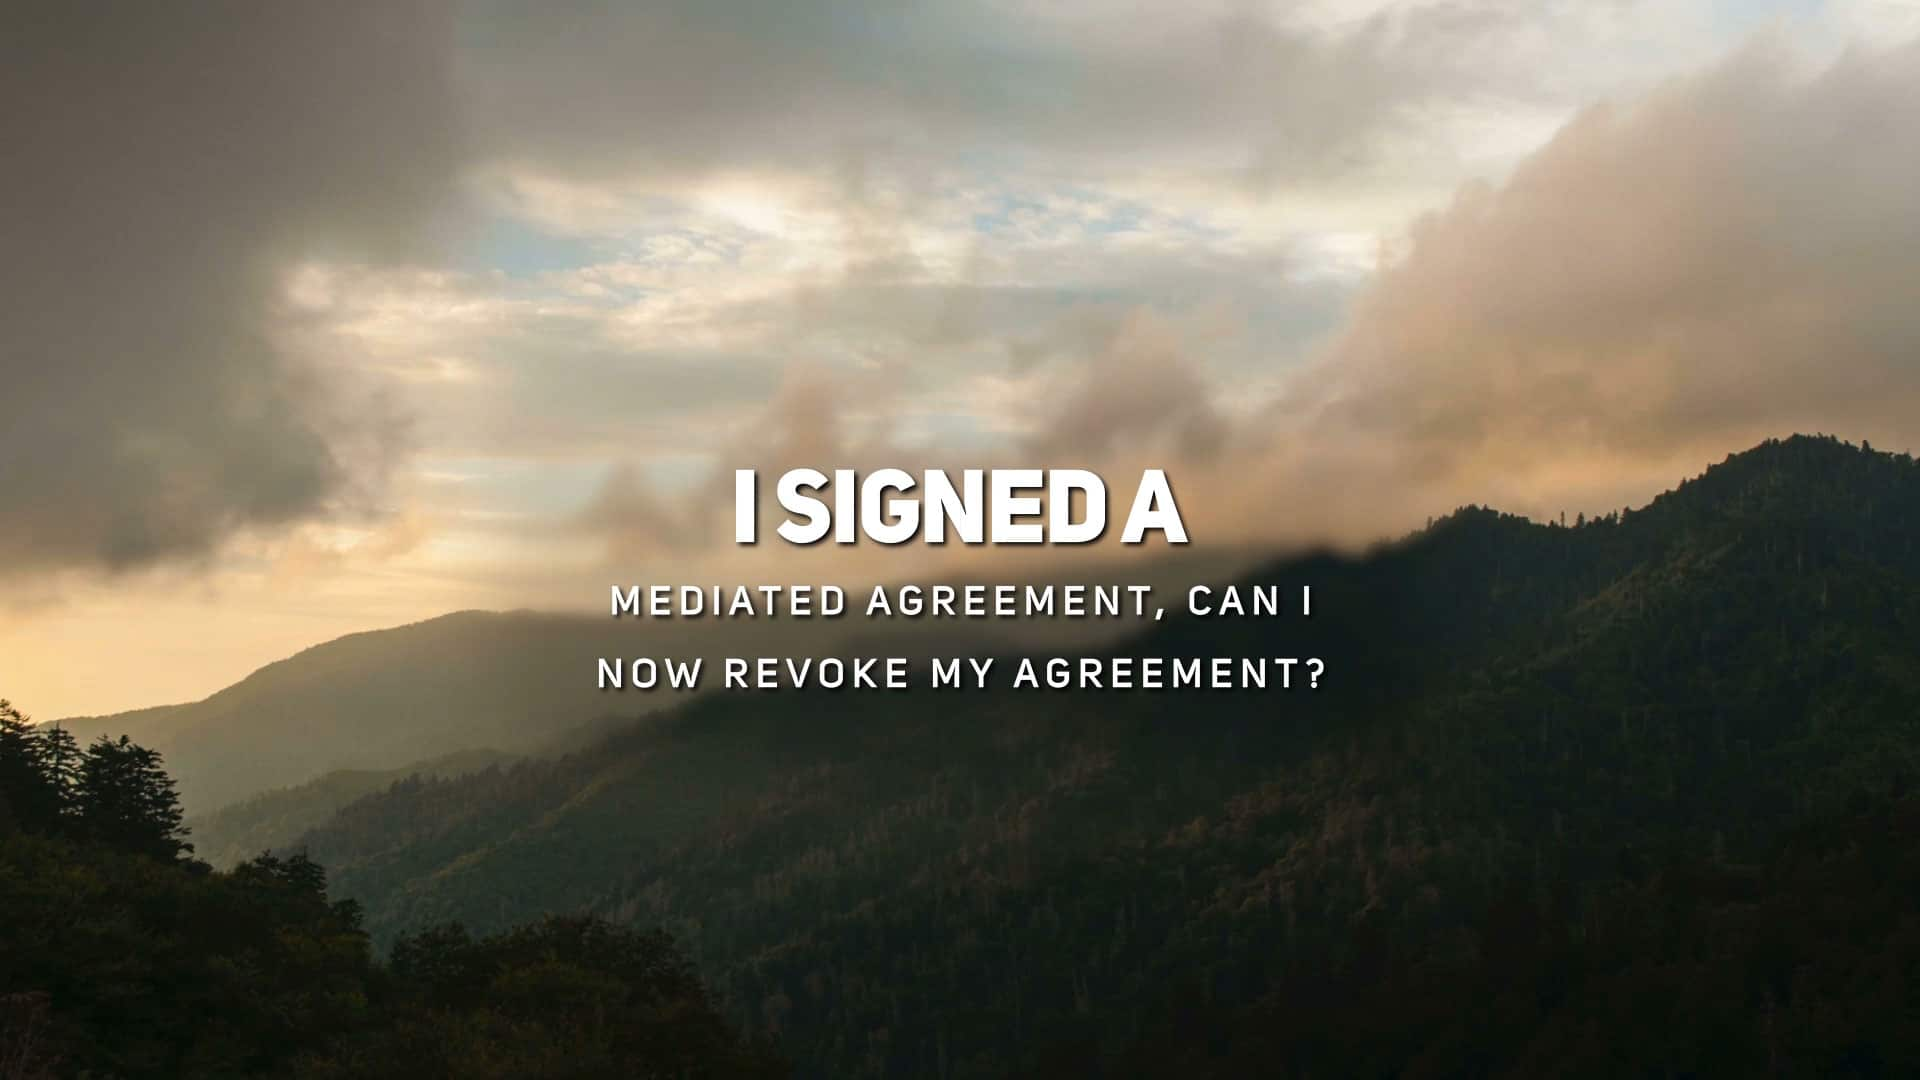 I Signed a Mediated Agreement Can I Now Revoke My Agreement